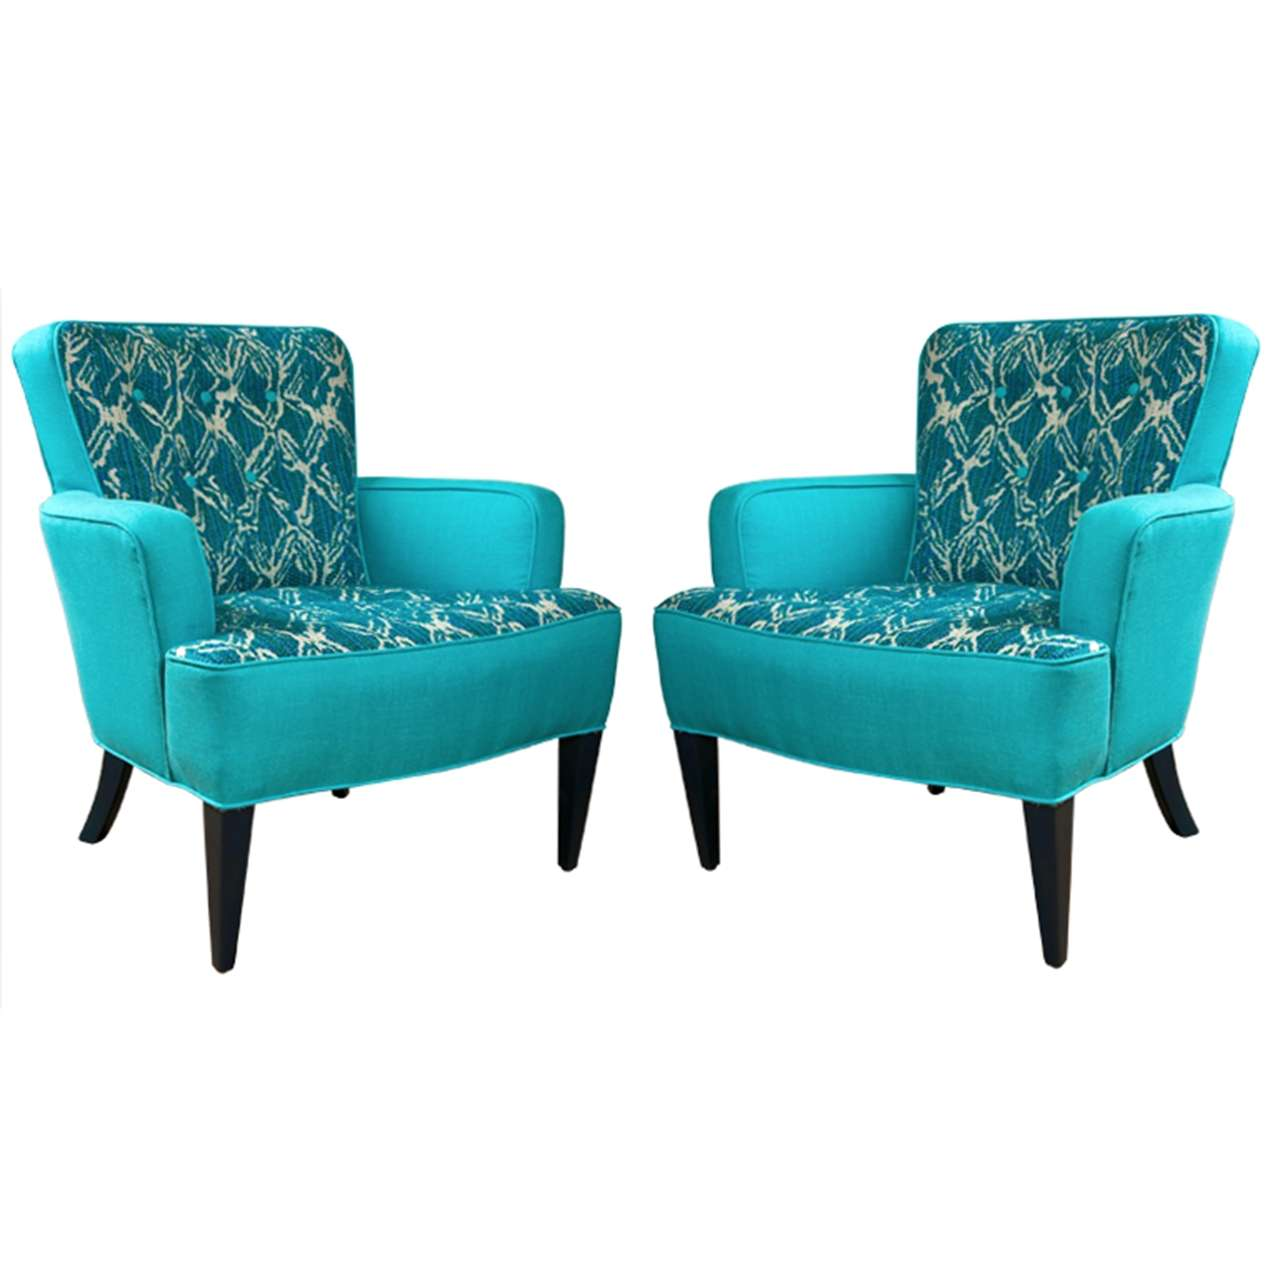 Turquoise Leather Chair Mid Century Turquoise Club Chairs With Daniel Cooper